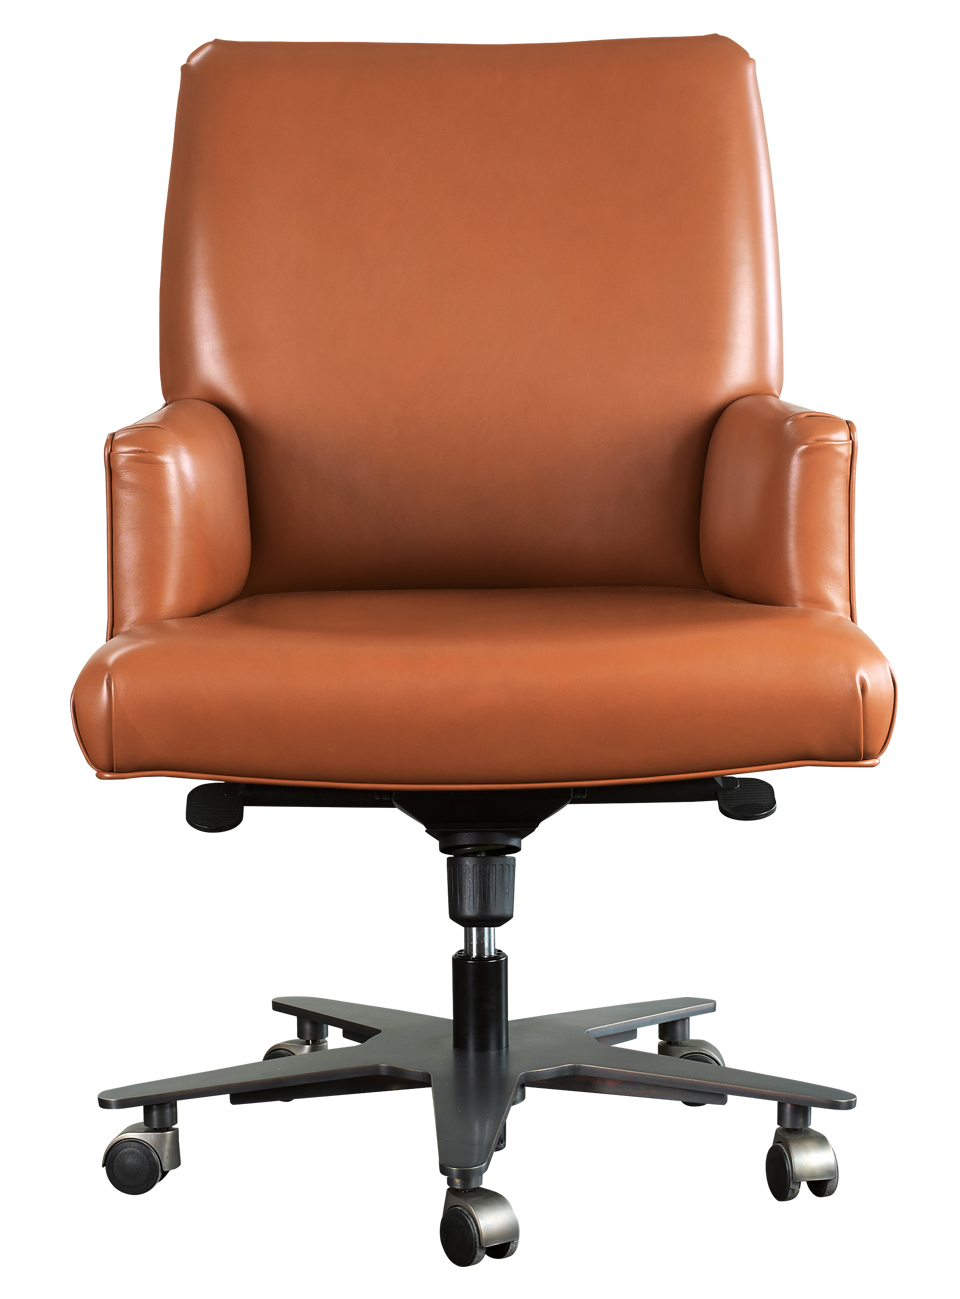 Isotta Is An Office Chair With Or Without Armrests Covered In Fabric Leather From